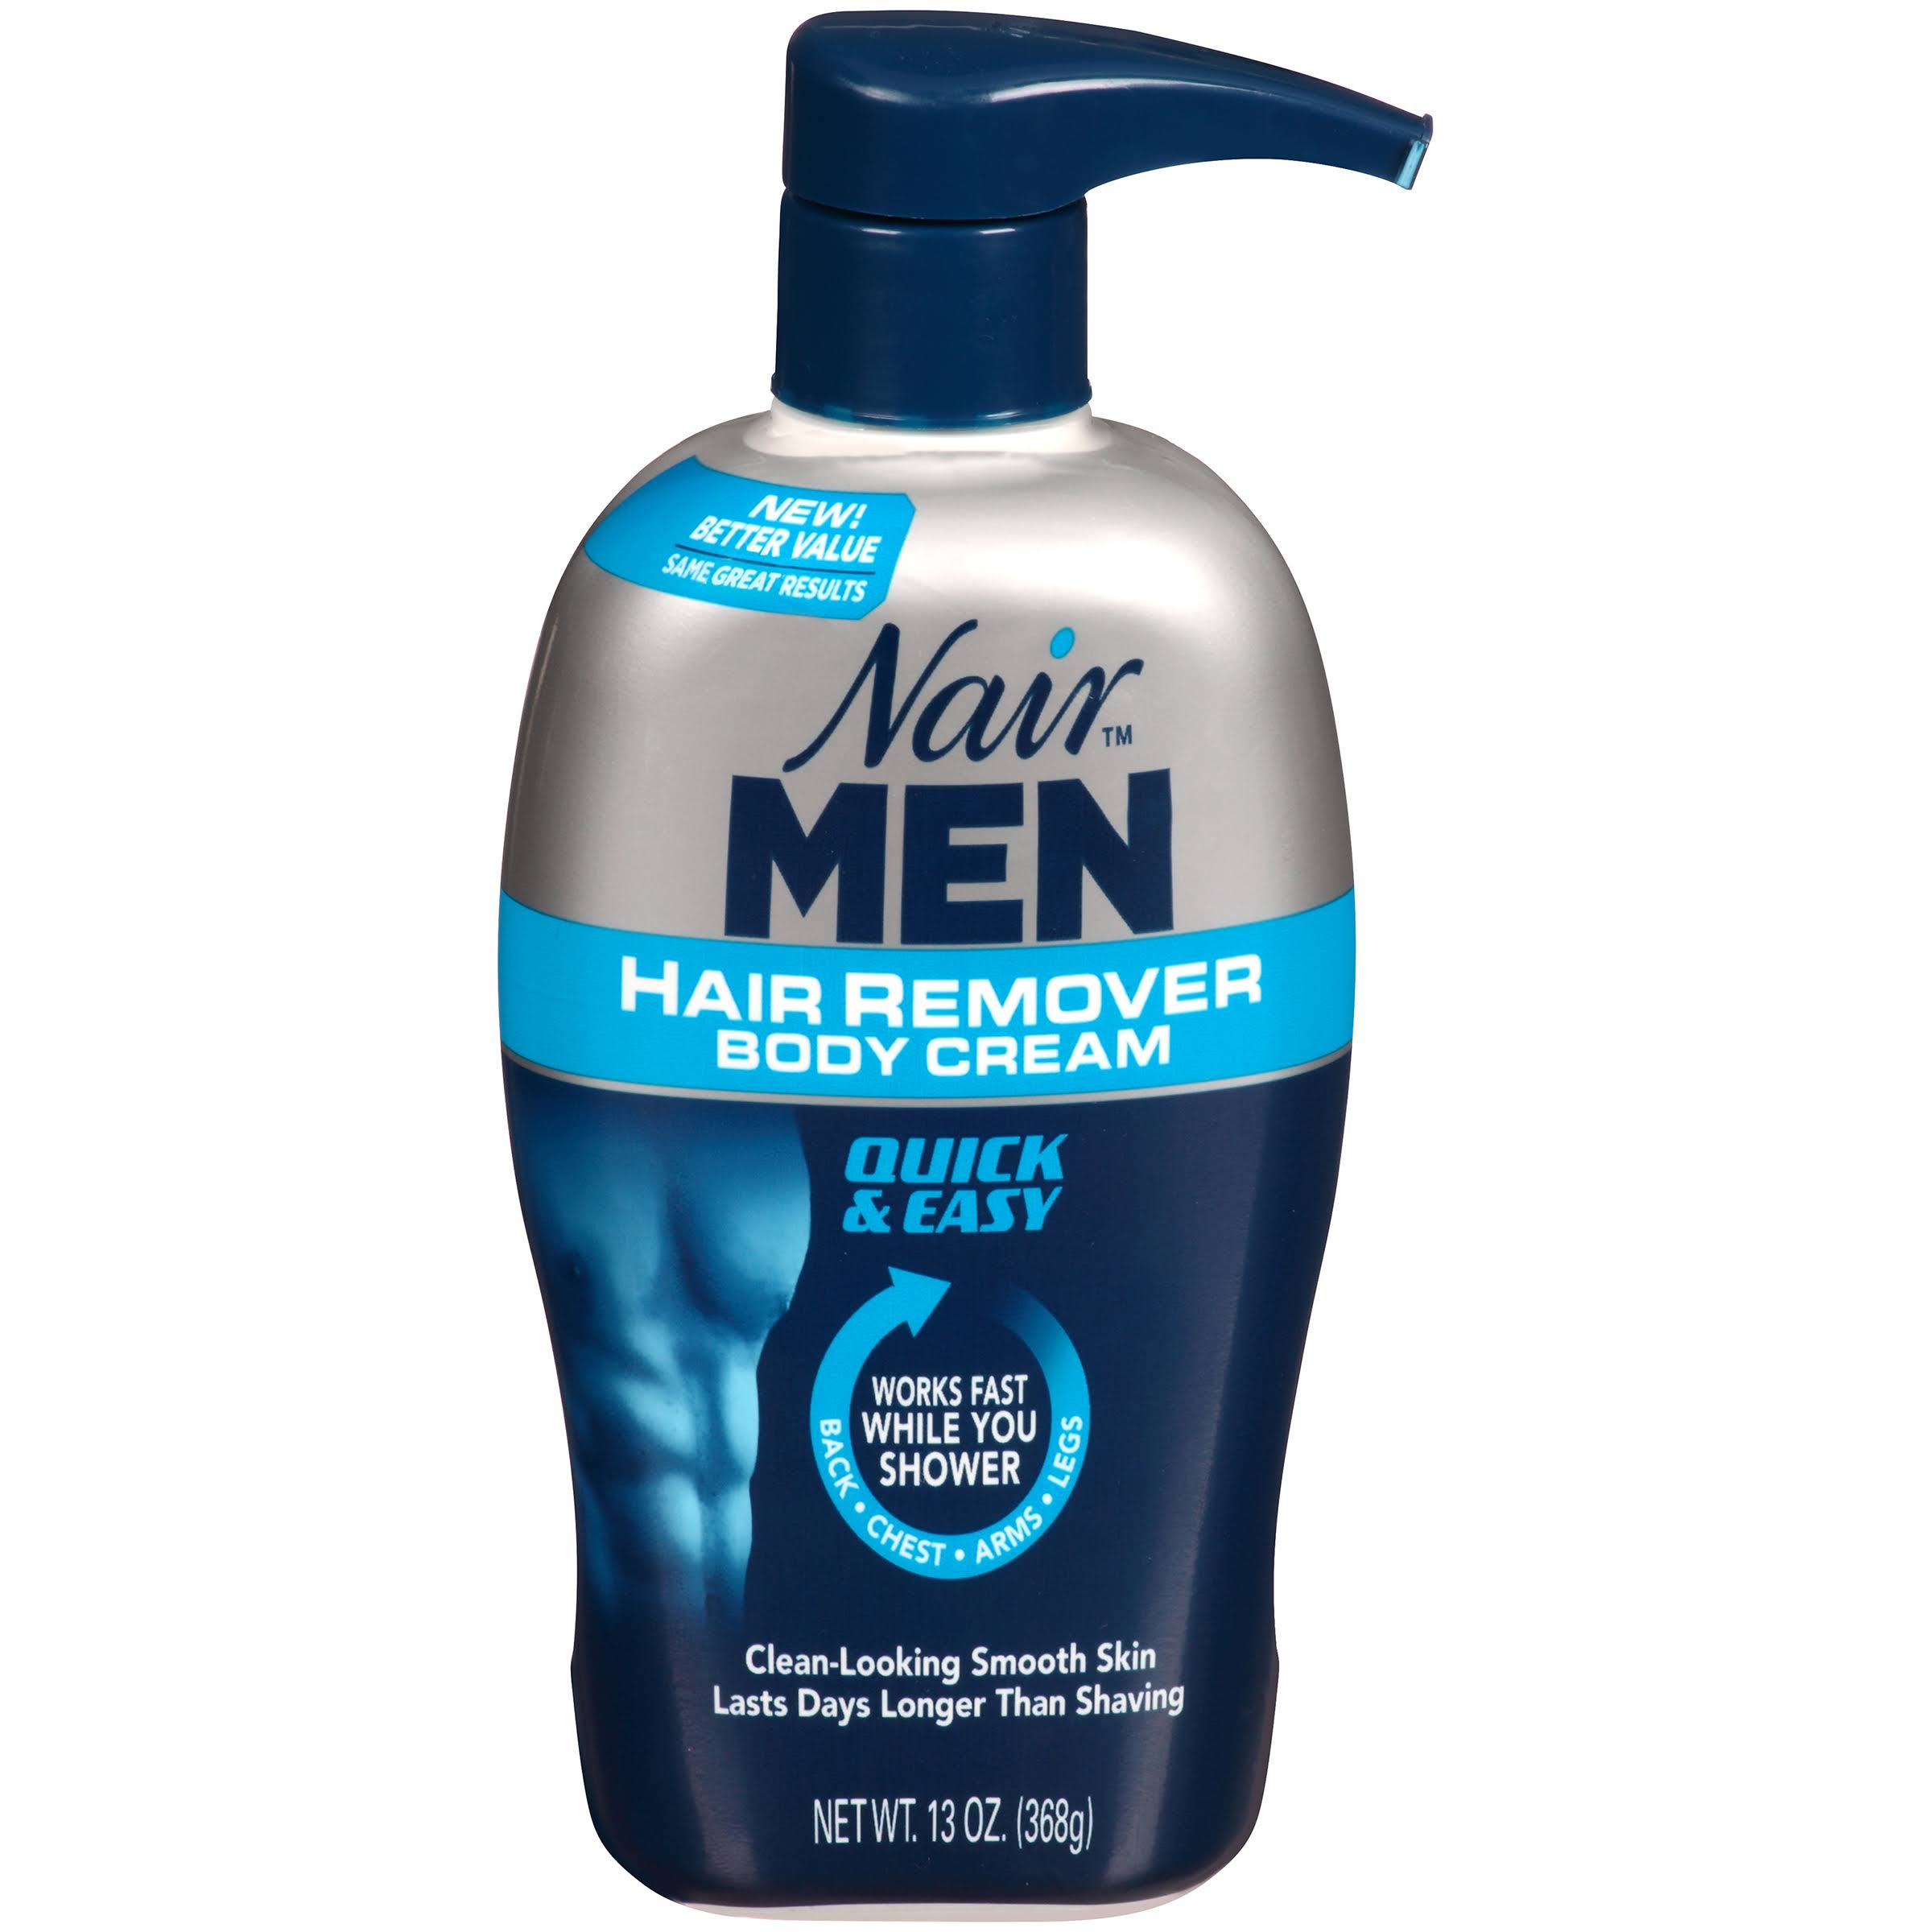 Nair Men Hair Remover Body Cream - 13 oz